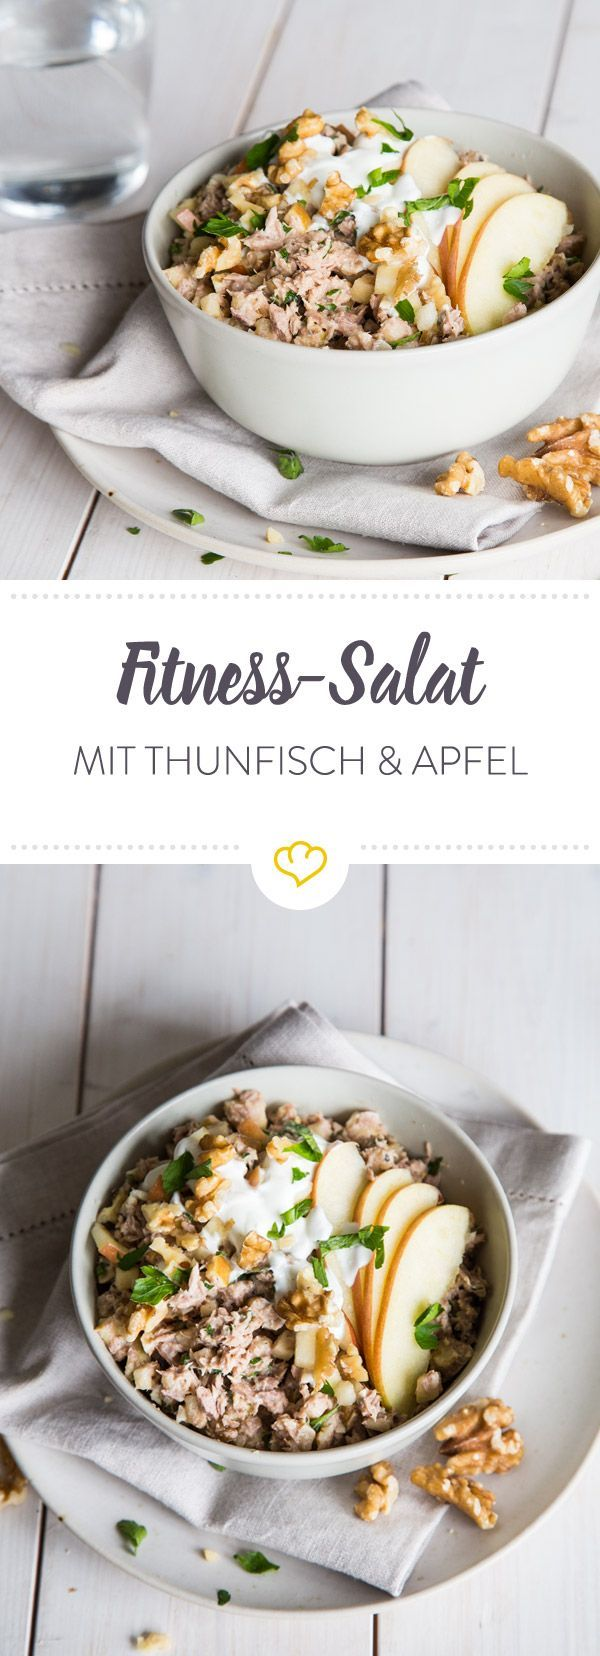 Fitness tuna salad with apple and walnuts,  #Apple #Fitness #Salad #saladrecipeshealthy #Tuna #Walnu...